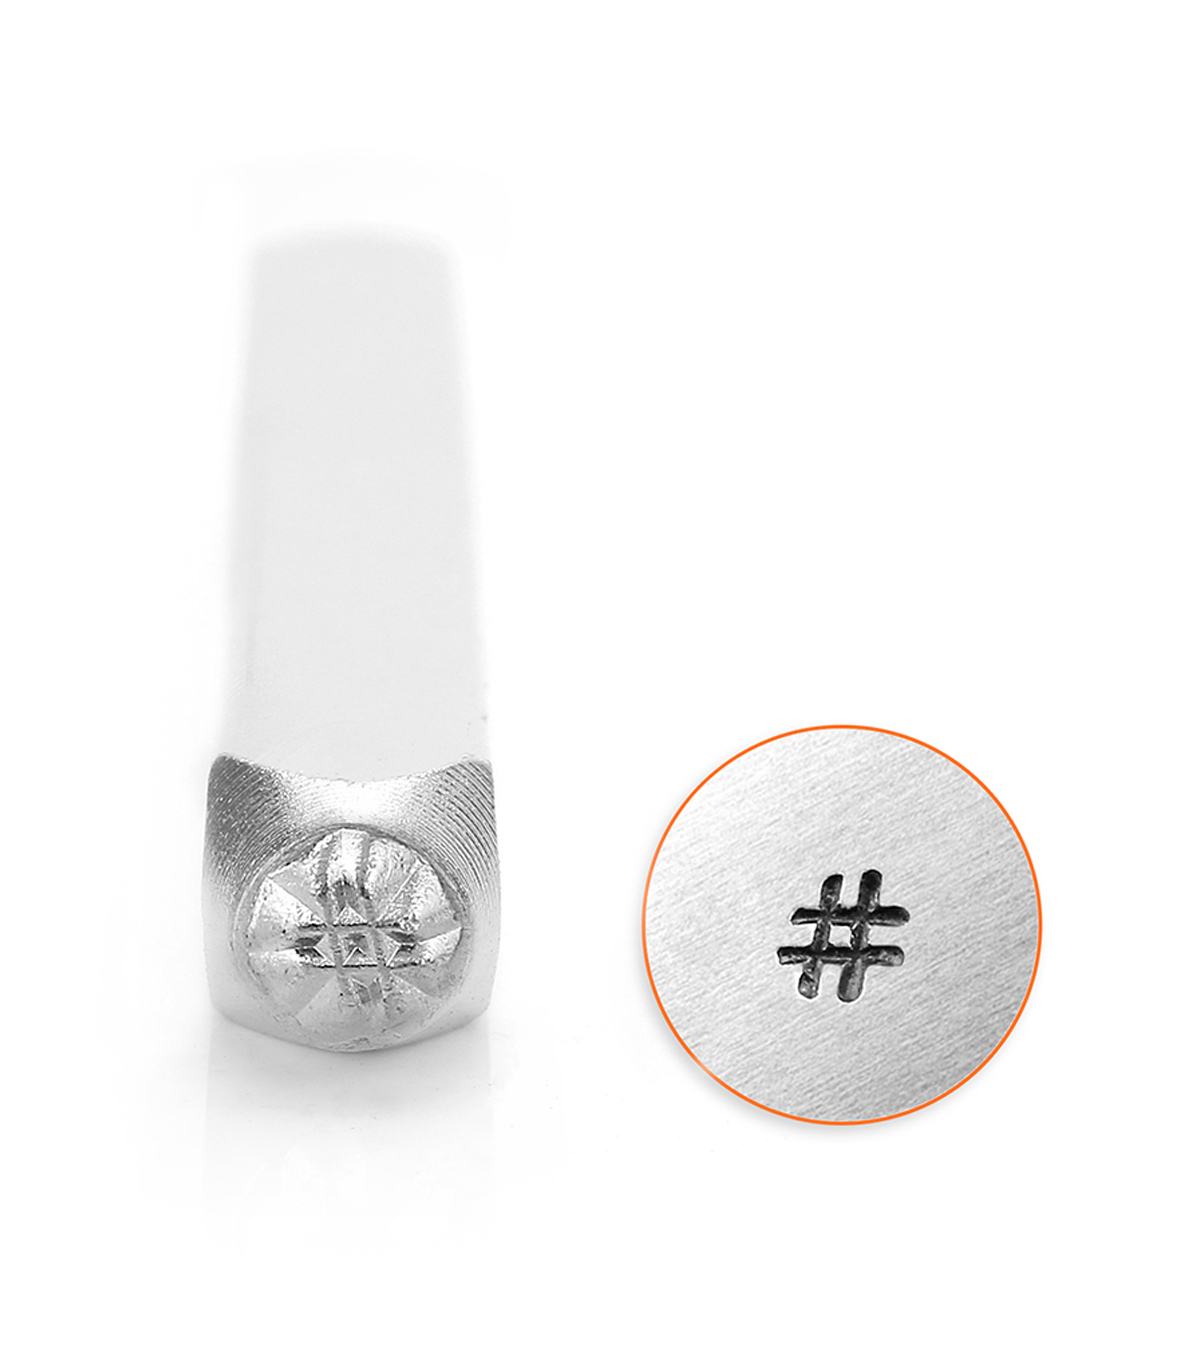 ImpressArt 3mm Stamp Hashtag